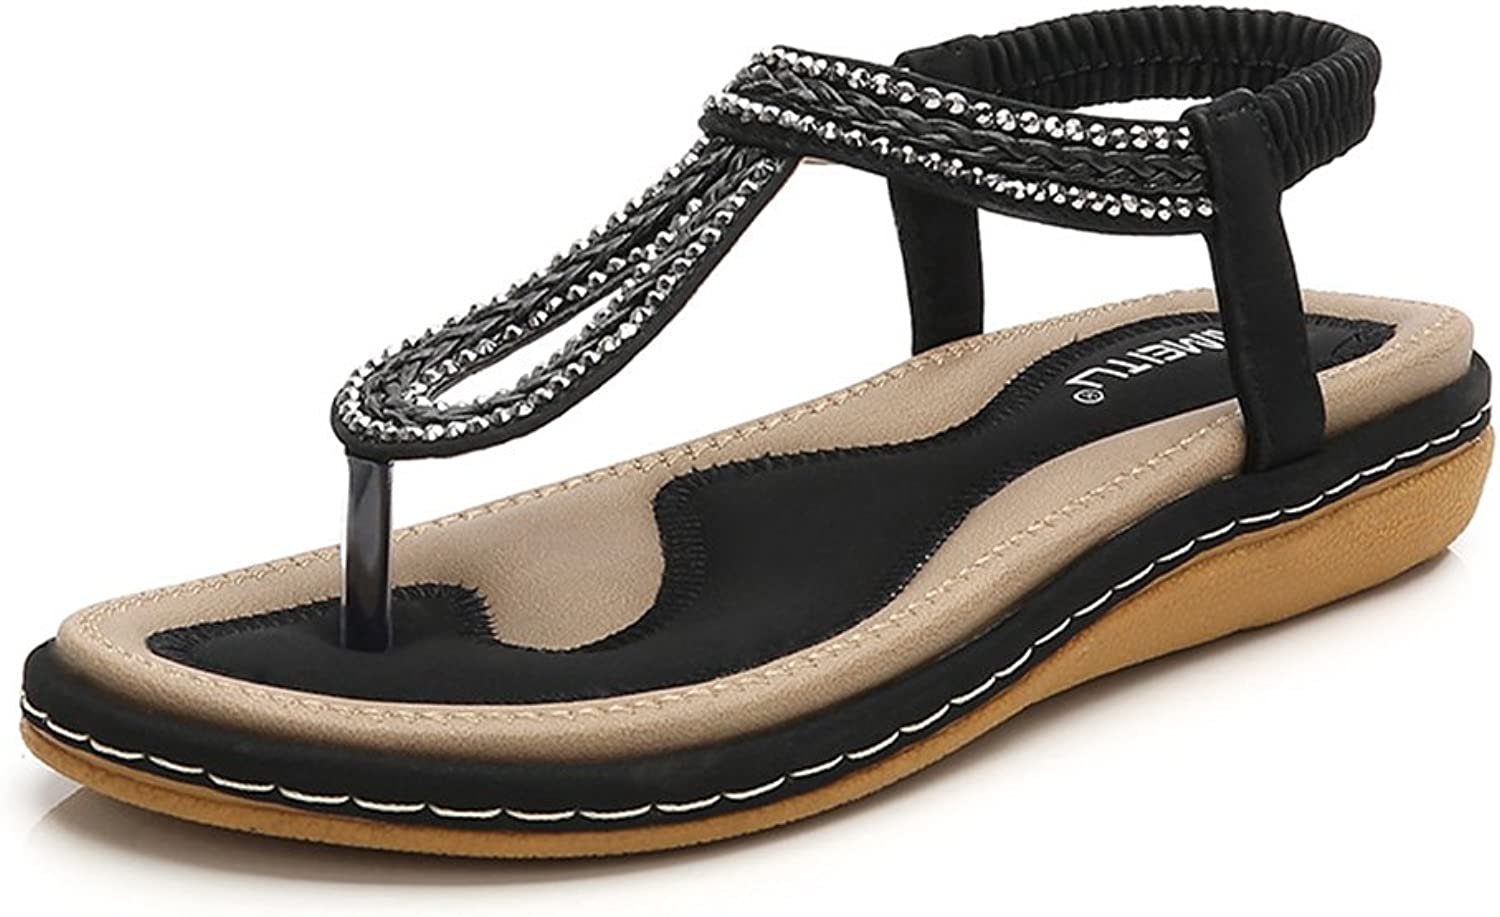 Baviue Women's Sandles Leather Casual Thong Sandals